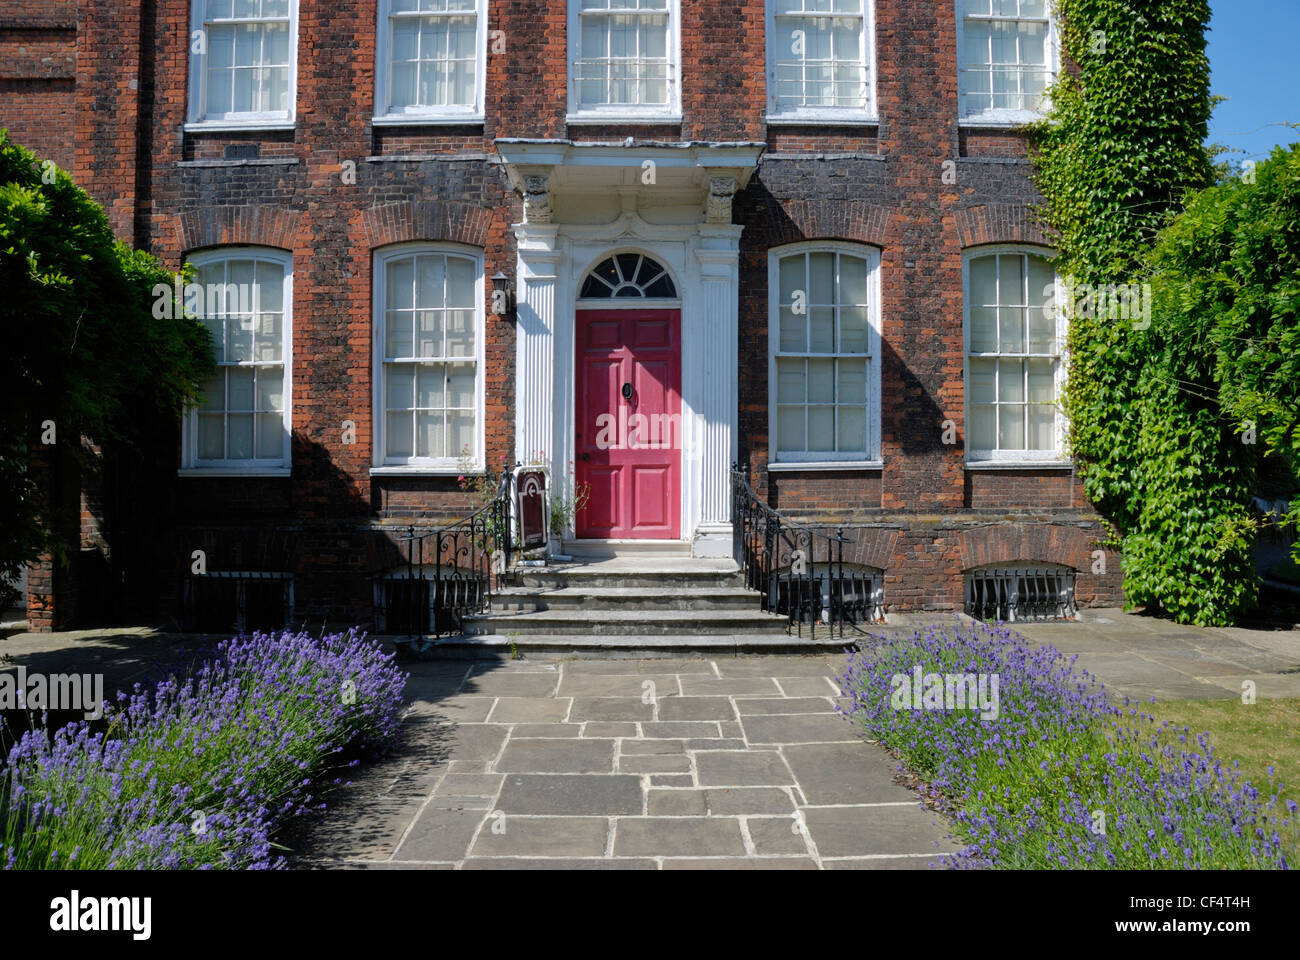 Hollytrees Museum is home to 300 years of fascinating toys, costumes and decorative arts in a Georgian town house - Stock Image